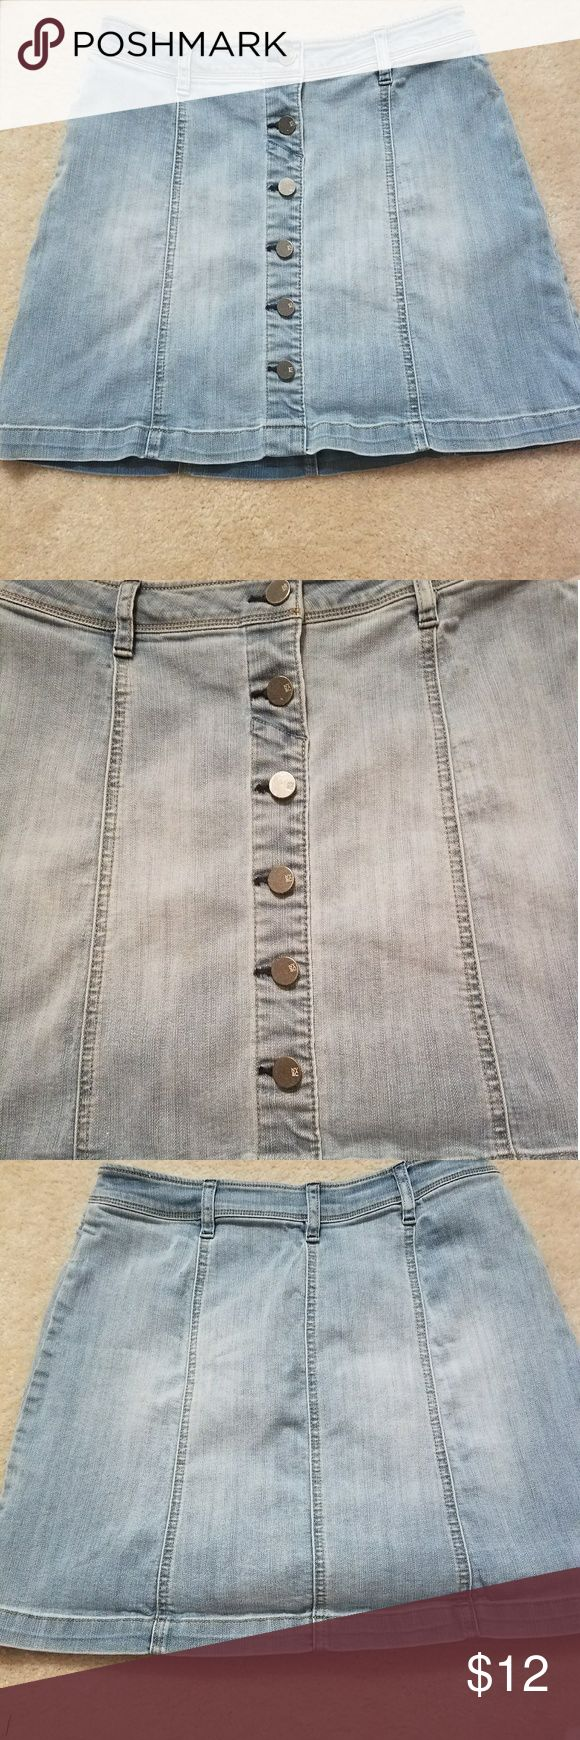 Denim Skater Skirt!! Super cute Button down denim skater skirt from New York and Company!! A year old... in good condition. Keep in mind this skirt is a mini!! Great all year round!! New York & Company Skirts Circle & Skater